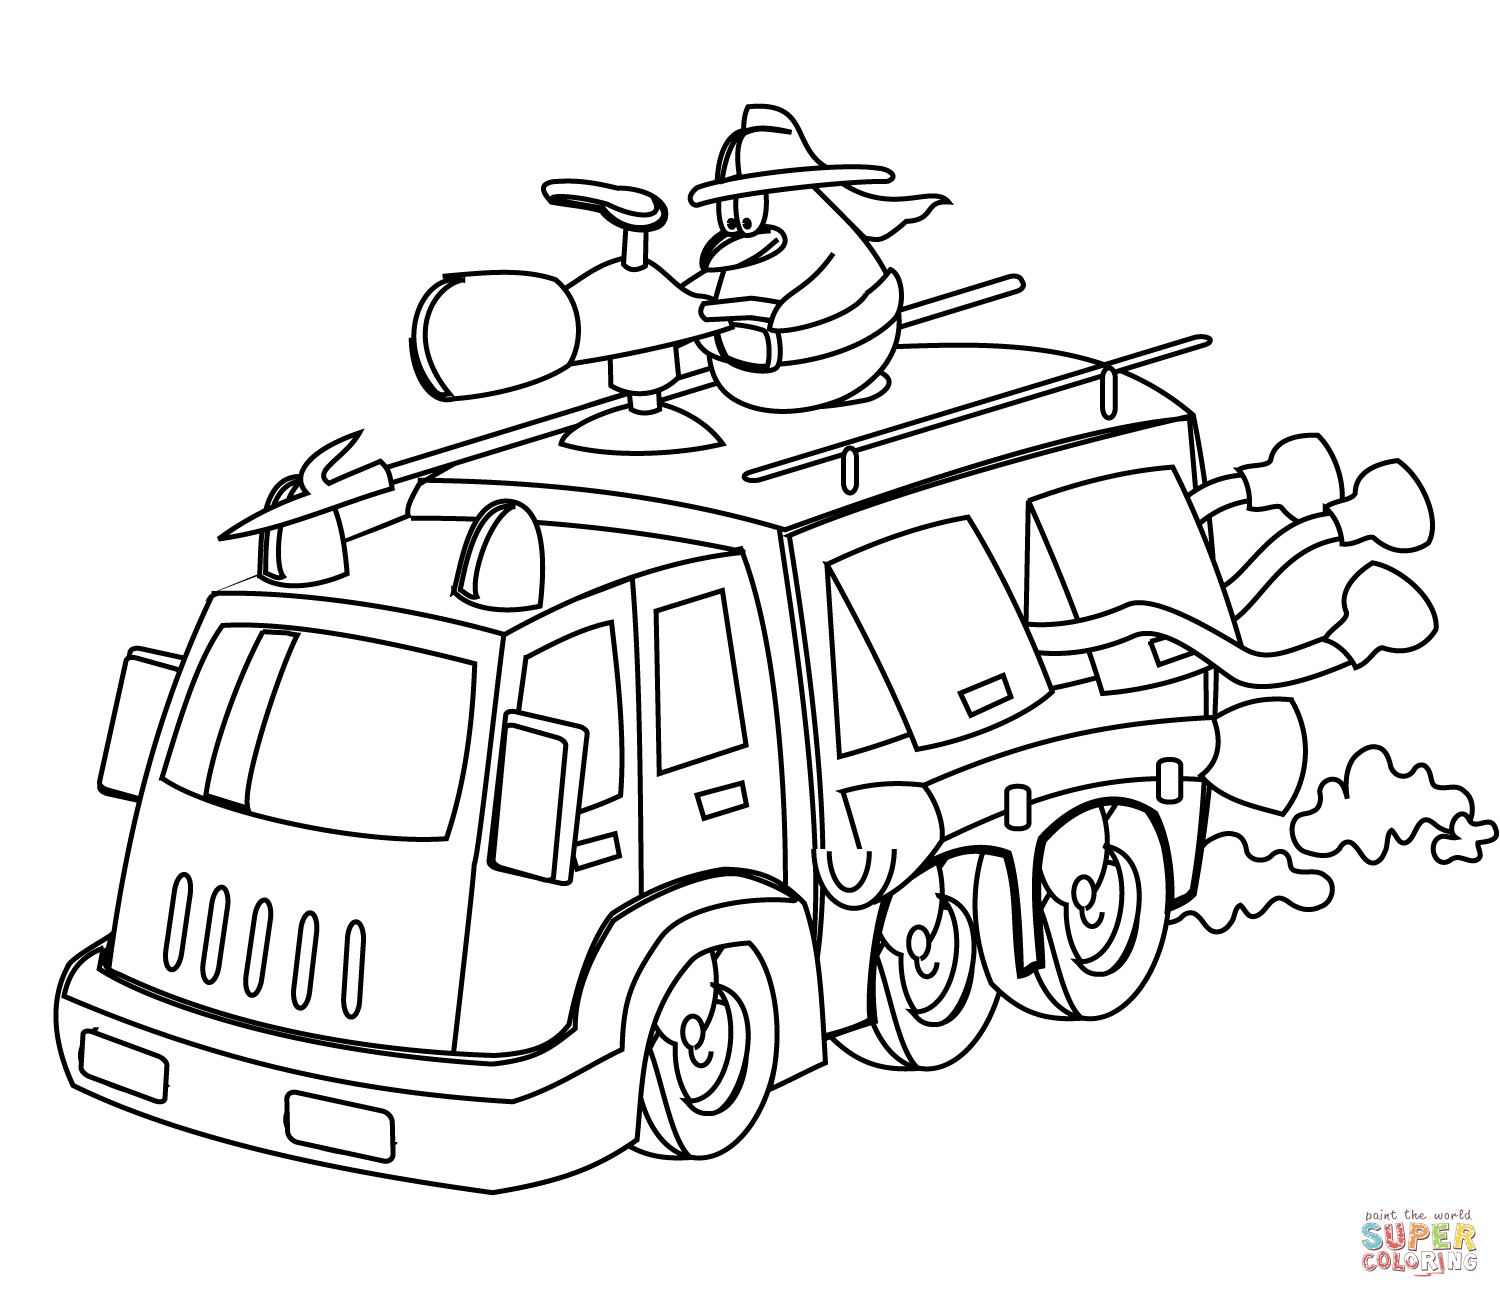 Pre K Big Truck Coloring Pages For Girls  Fire Truck Coloring Pages For Kids AZ Coloring Pages